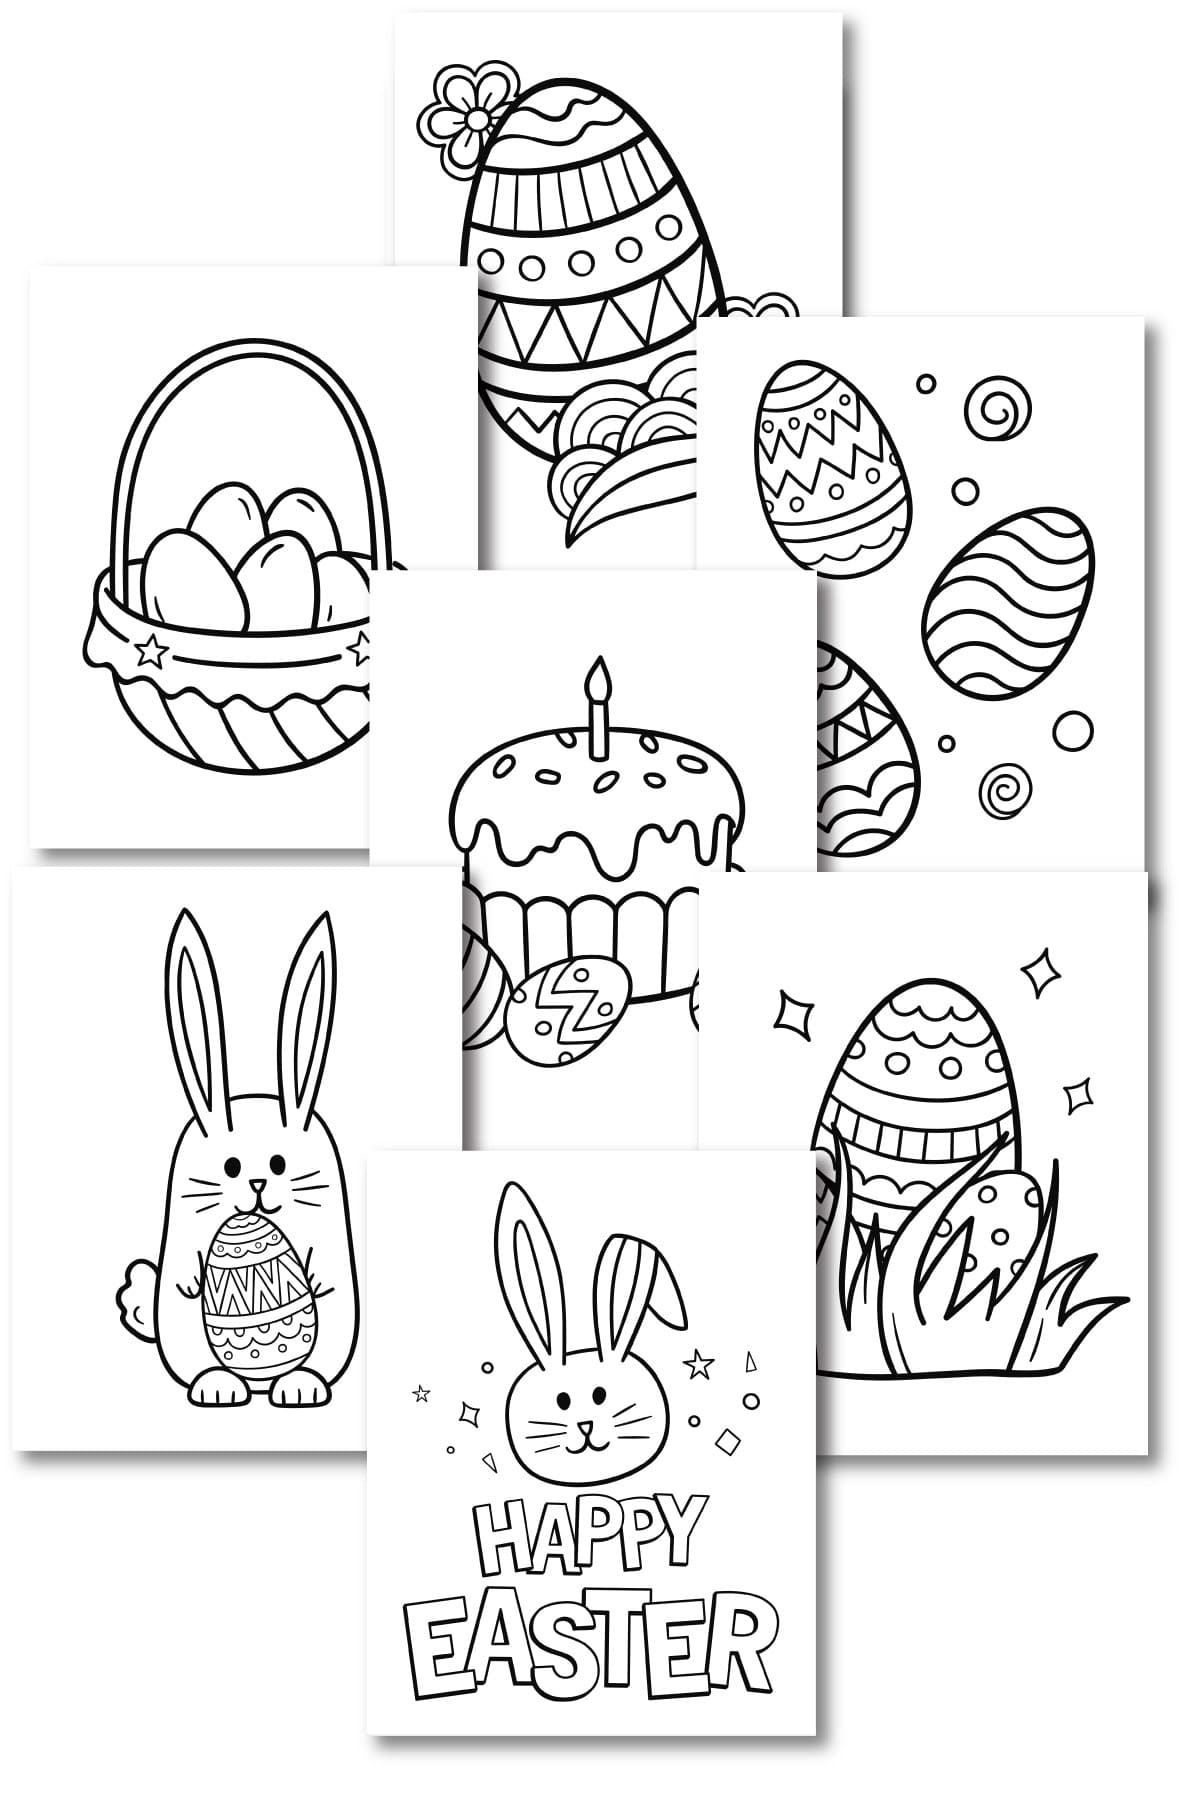 collage of Easter coloring pages